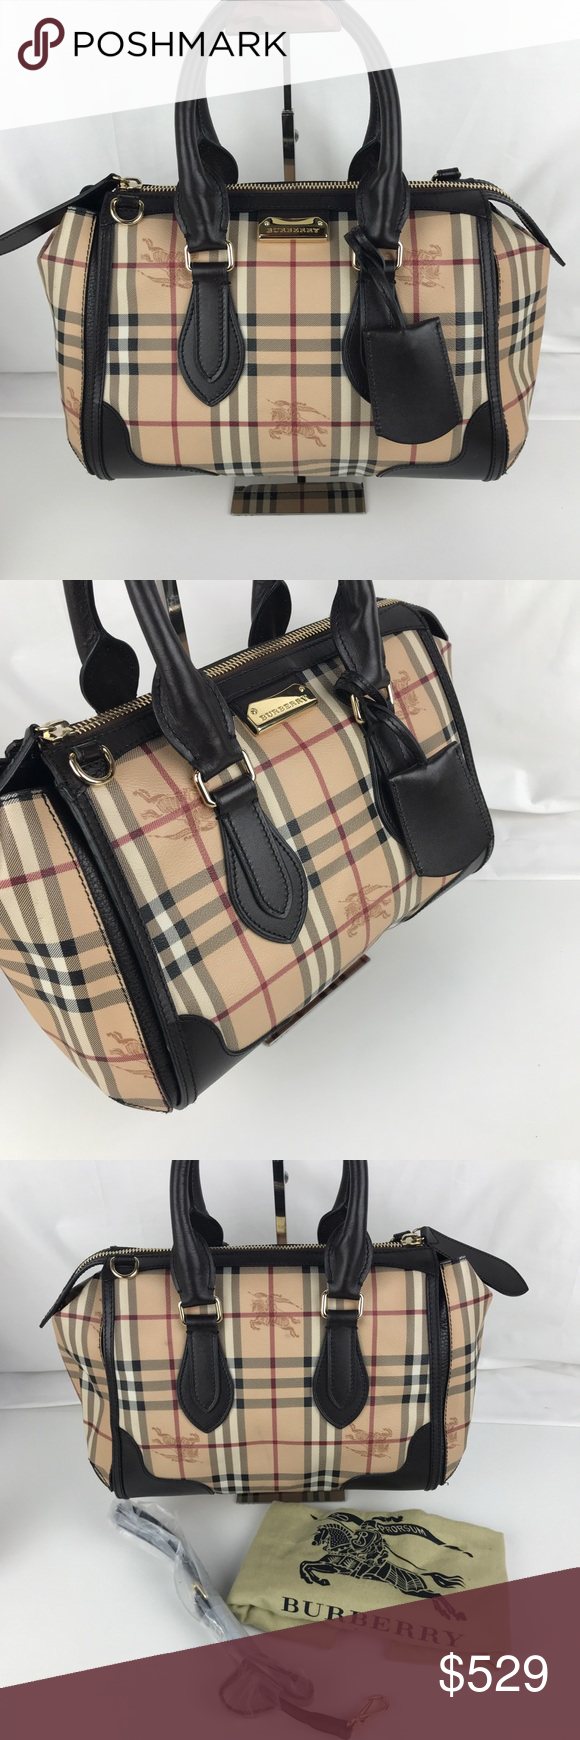 988fb34b0163 Burberry Plaid Gladstone Chocolate Tote 3870759 Authentic Burberry Style  3870759. Gently used with Original Dust